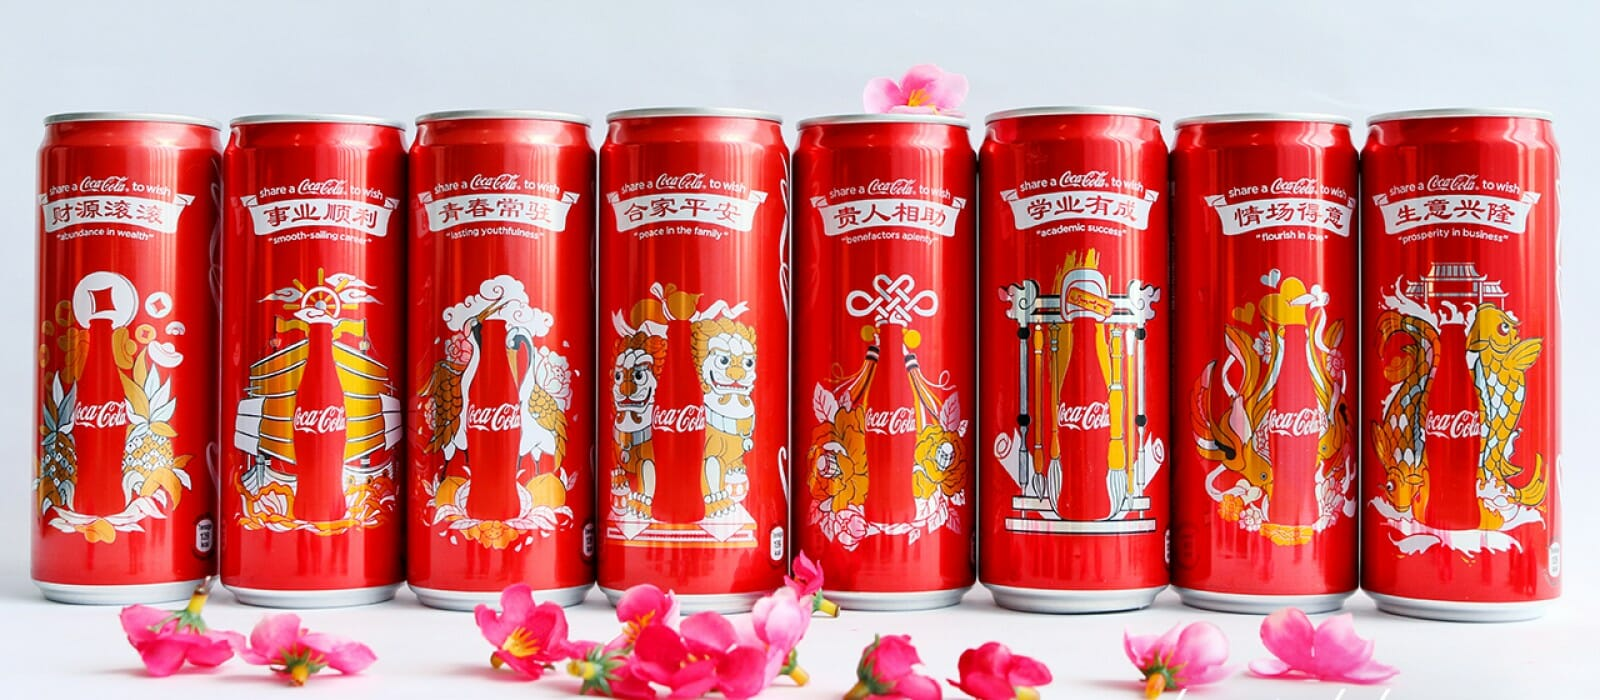 Coca-Cola's Limited Edition Festive Cans